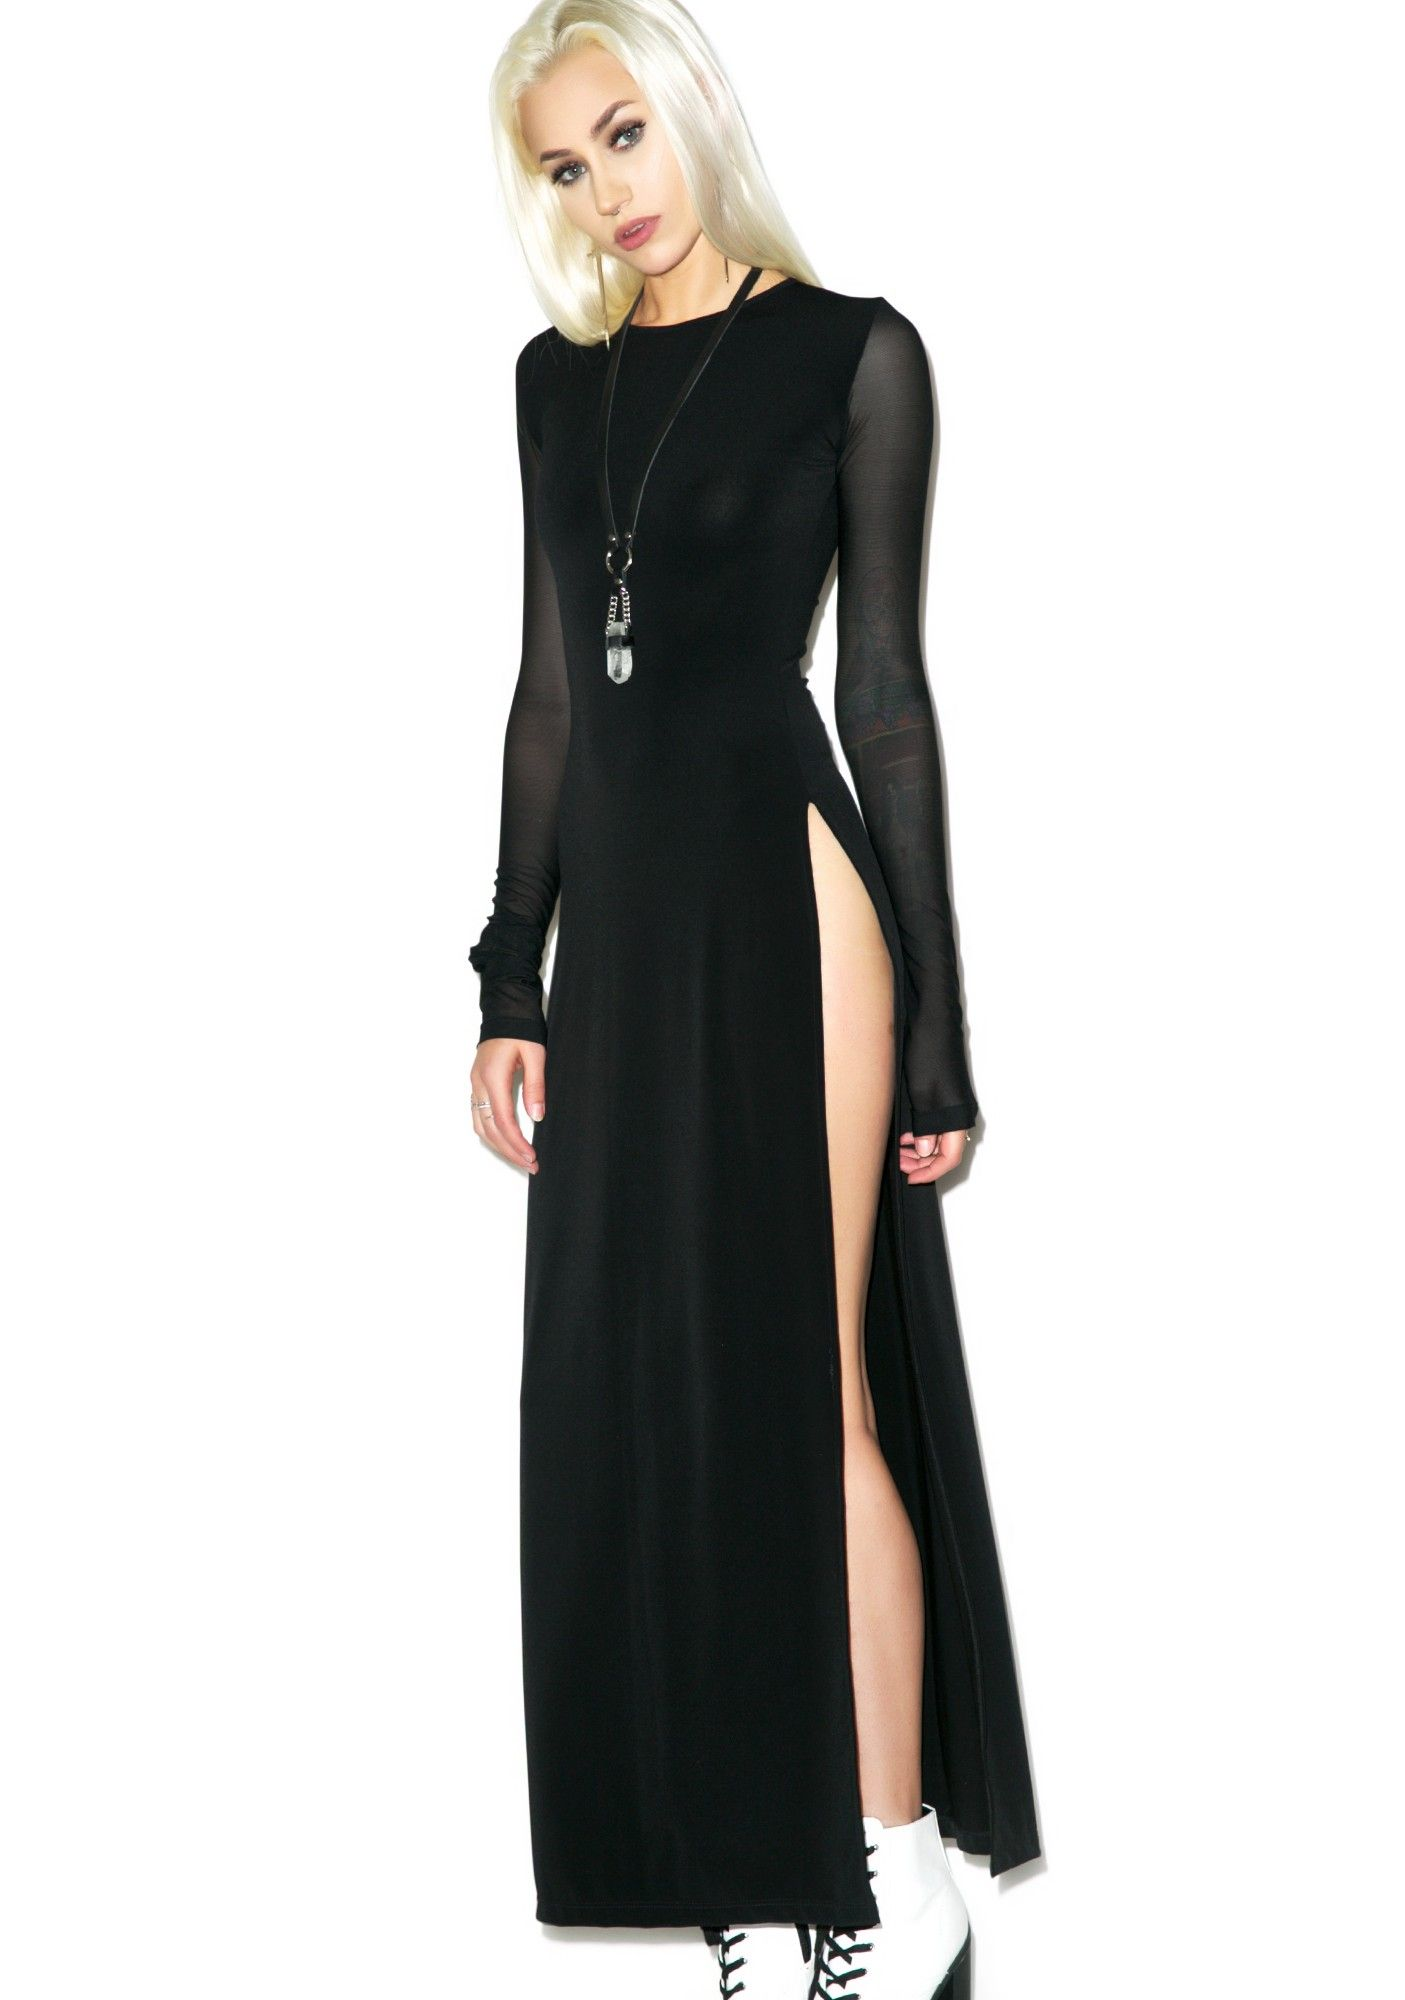 6405c26863d Features Black magic maxi dress Mesh long sleeves A keyhole back detail  Thigh-high slits on both sides with Black Wednesday Branding .